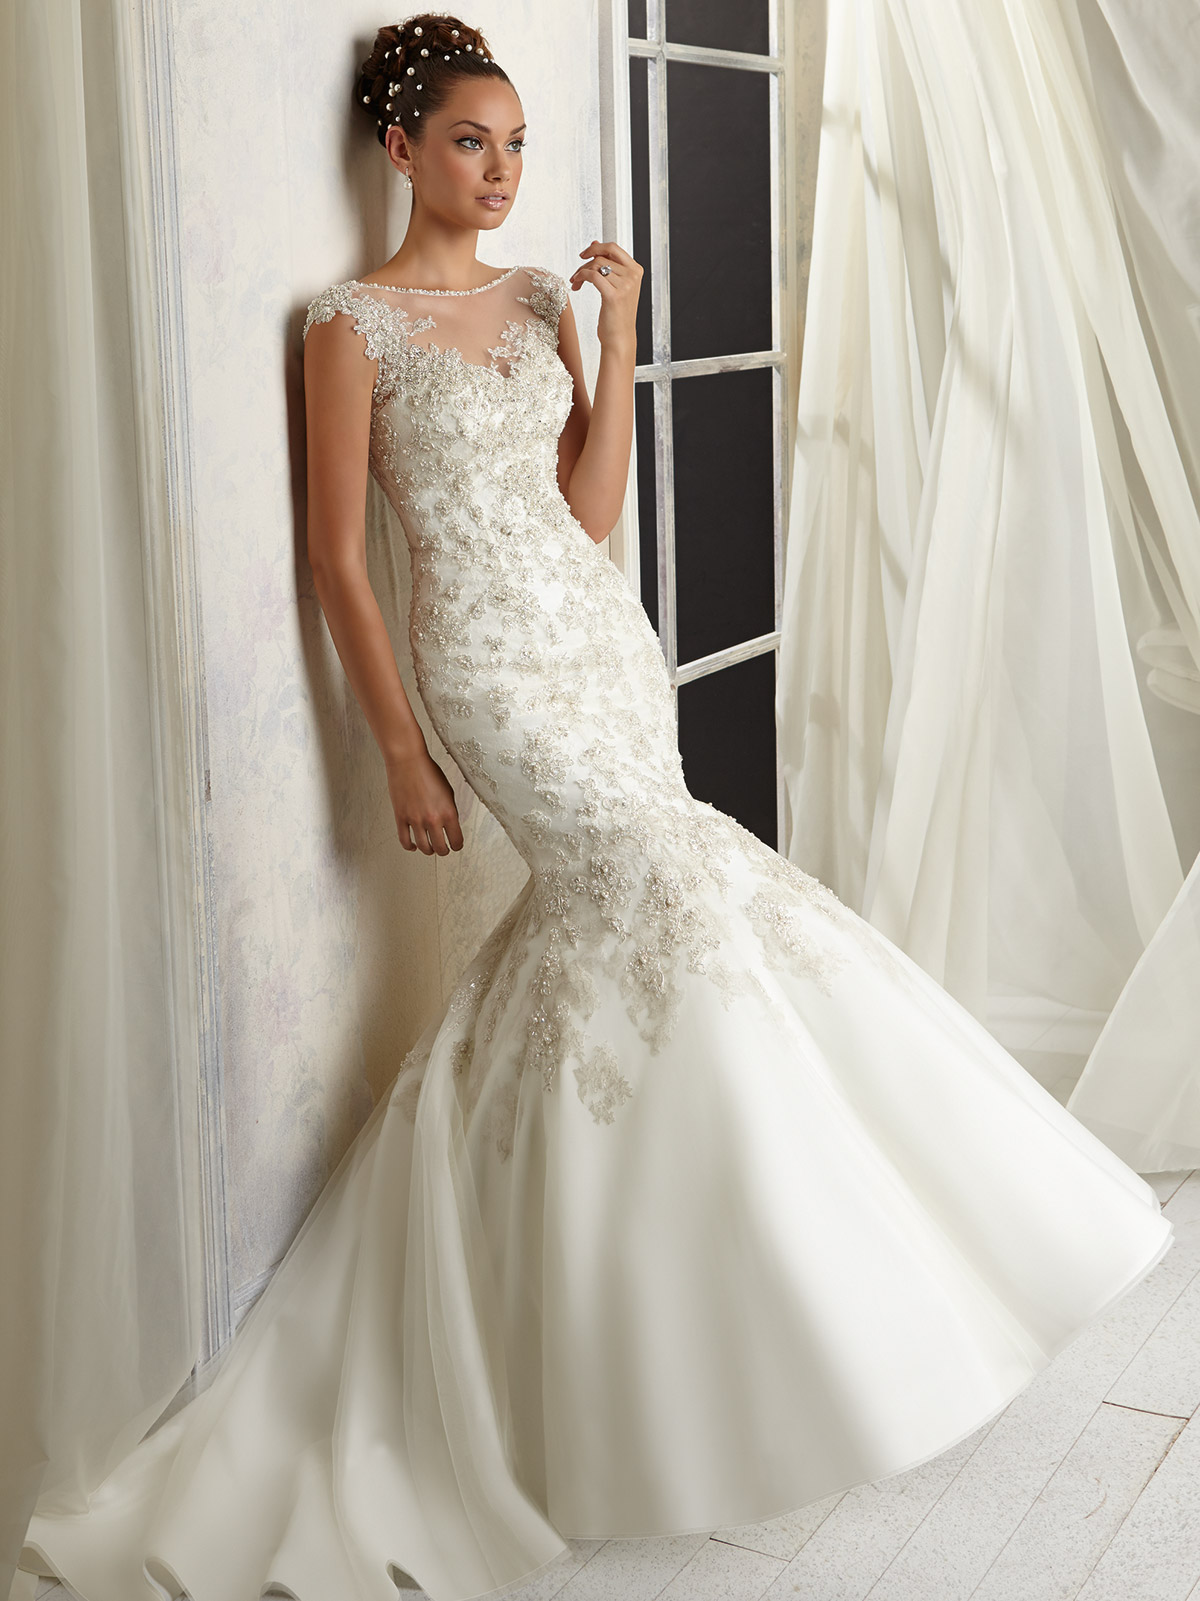 Cap Sleeves Sheer And Beaded Angelina Faccenda Mori Lee Wedding Dress